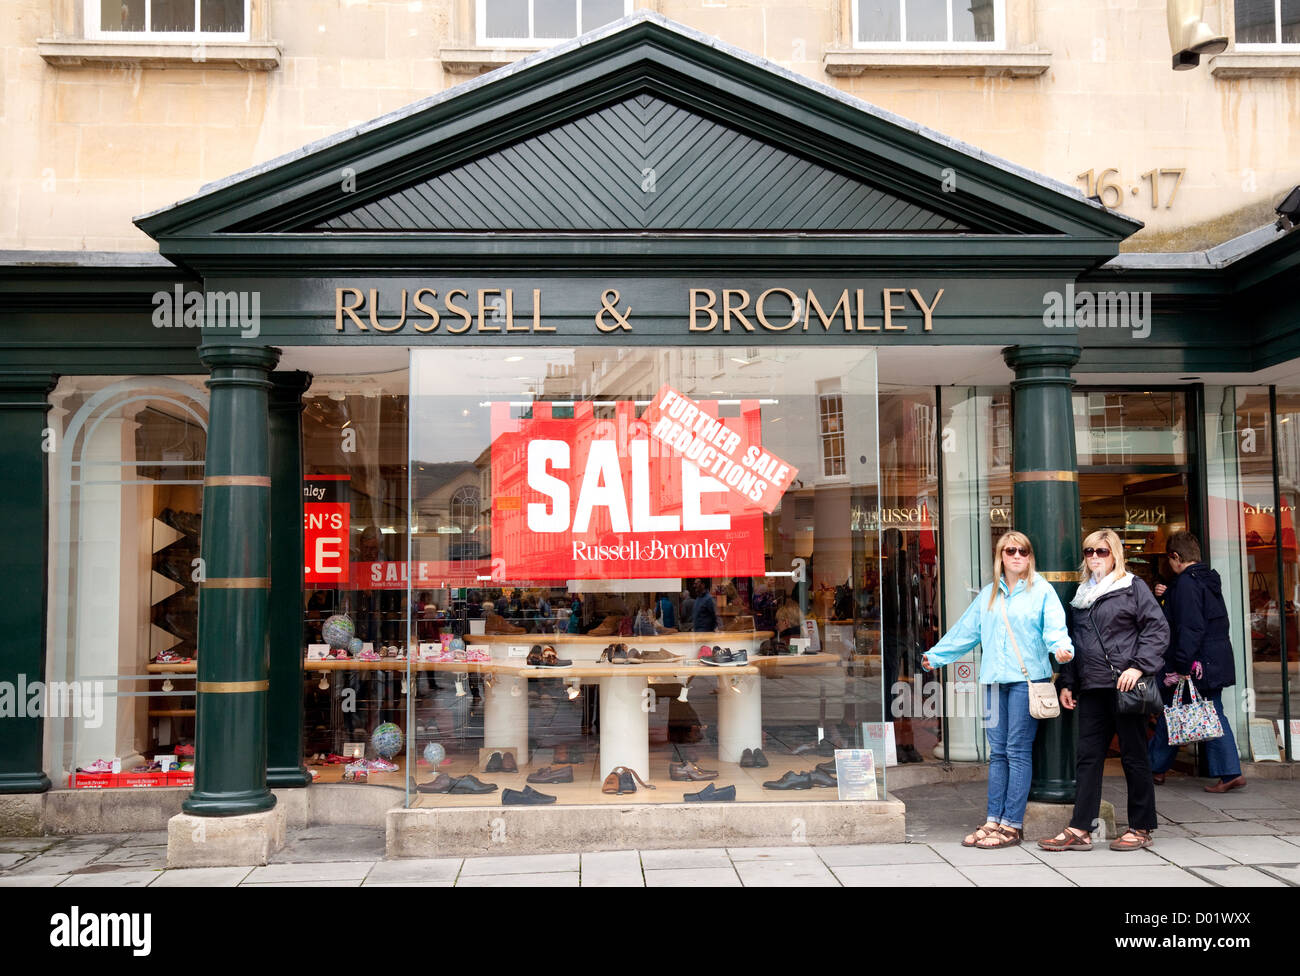 Russell & Bromley store shop in Bath having a sale, Bath, Somerset, UK - Stock Image